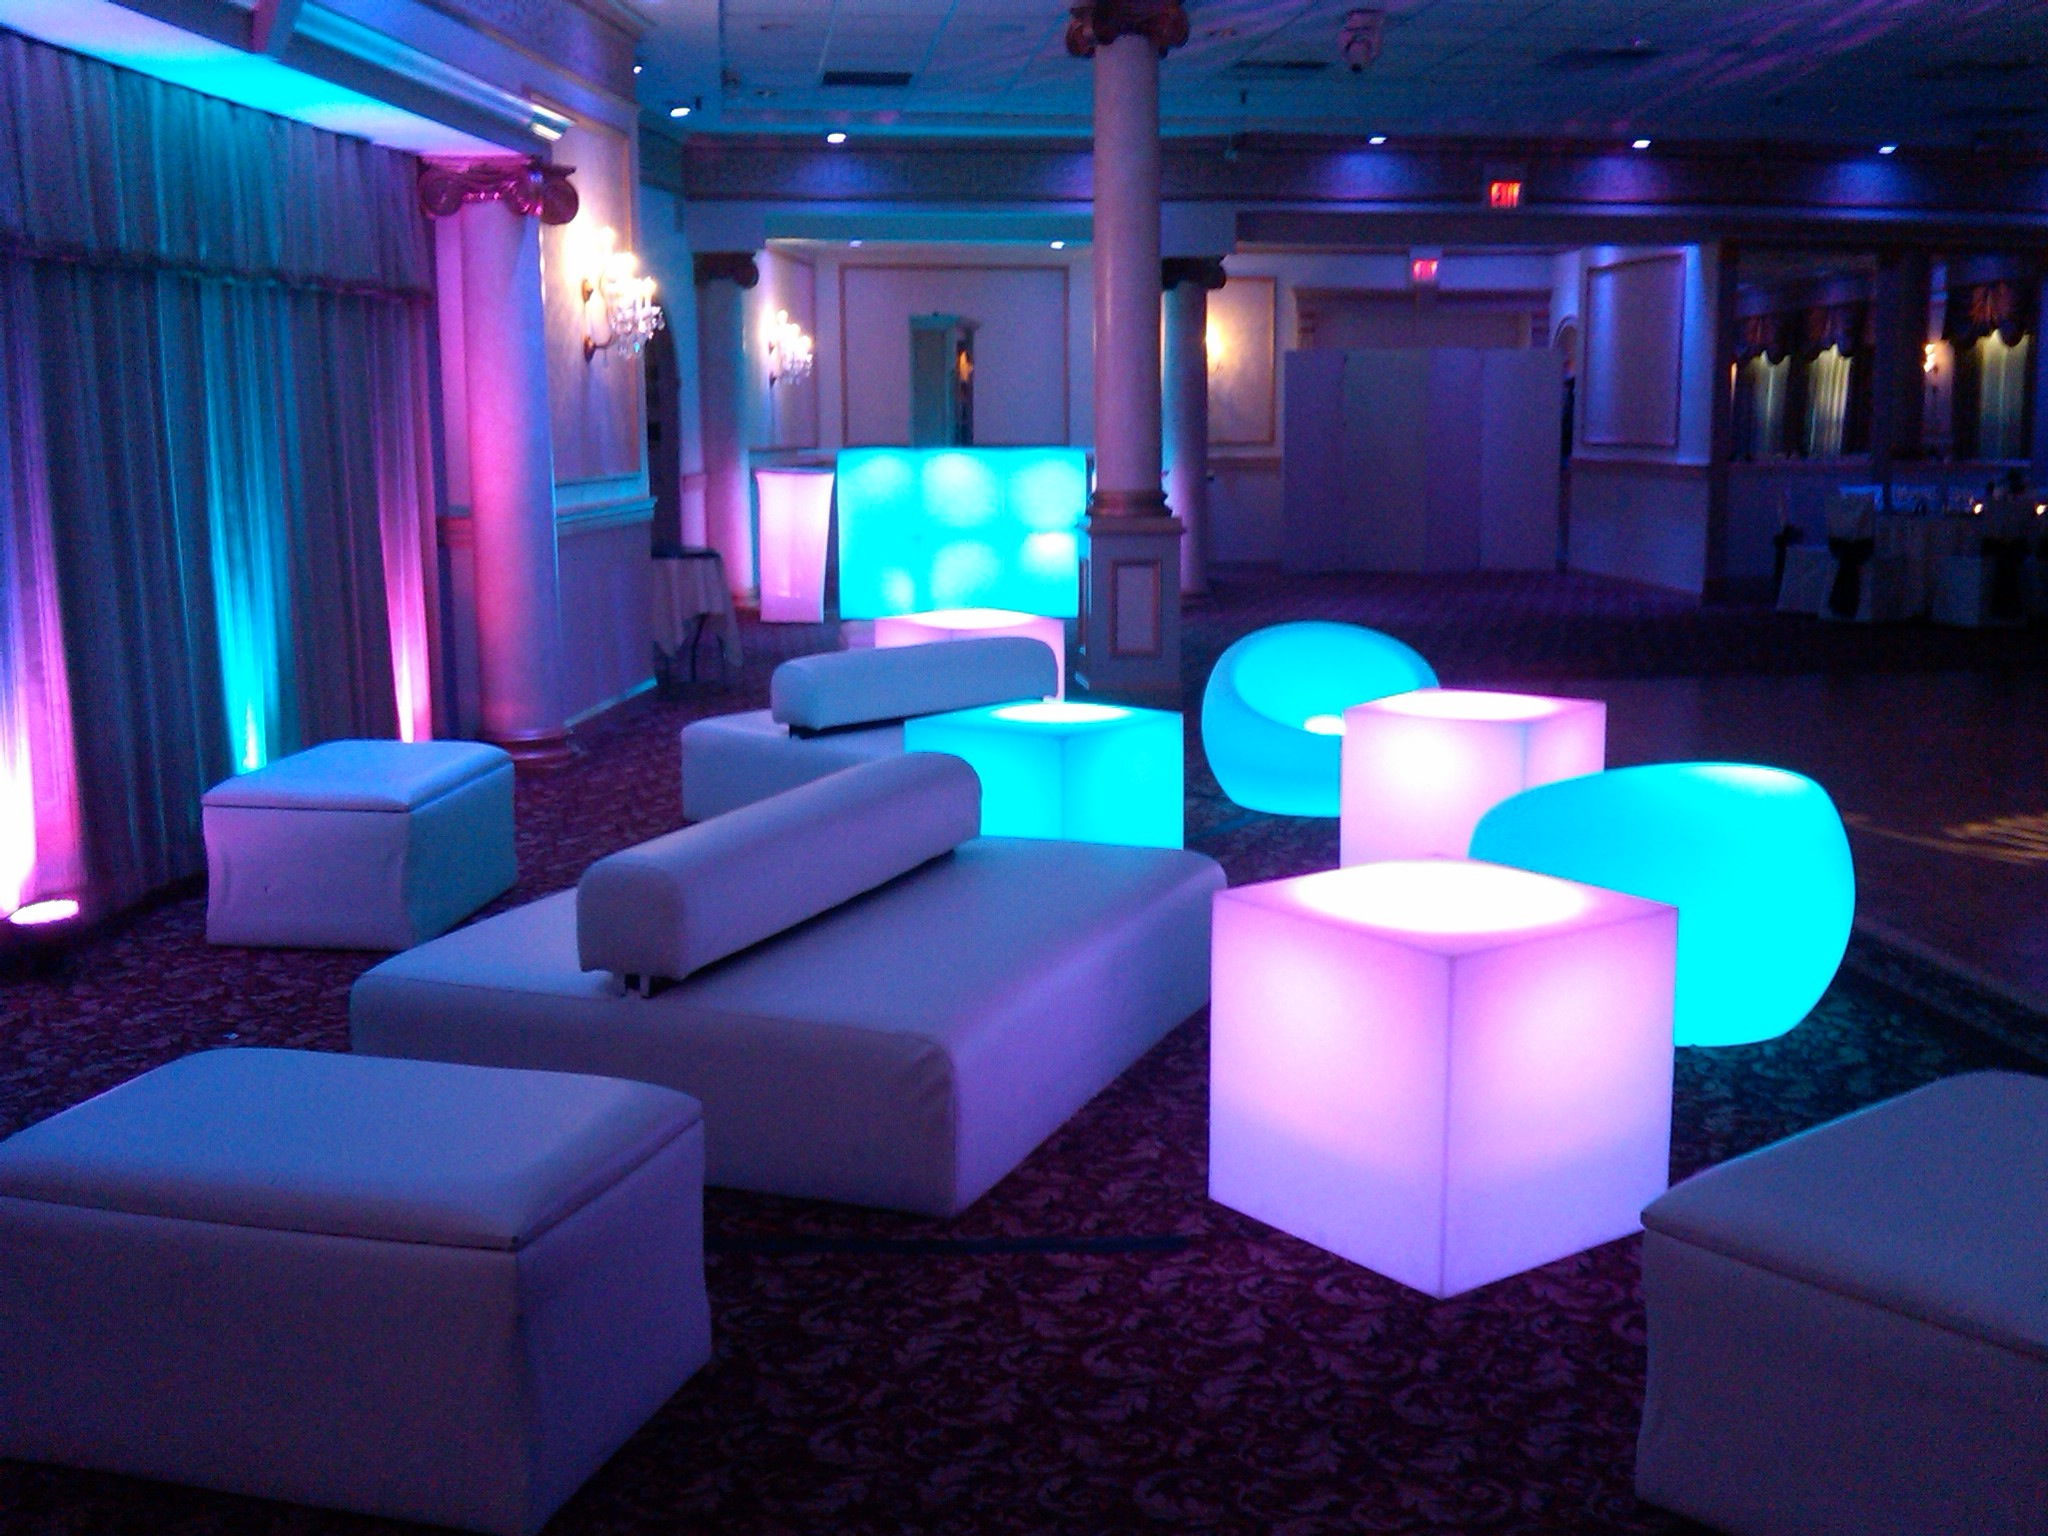 Tips about Lounge Furniture Los Angeles - The Hottest New Party Idea